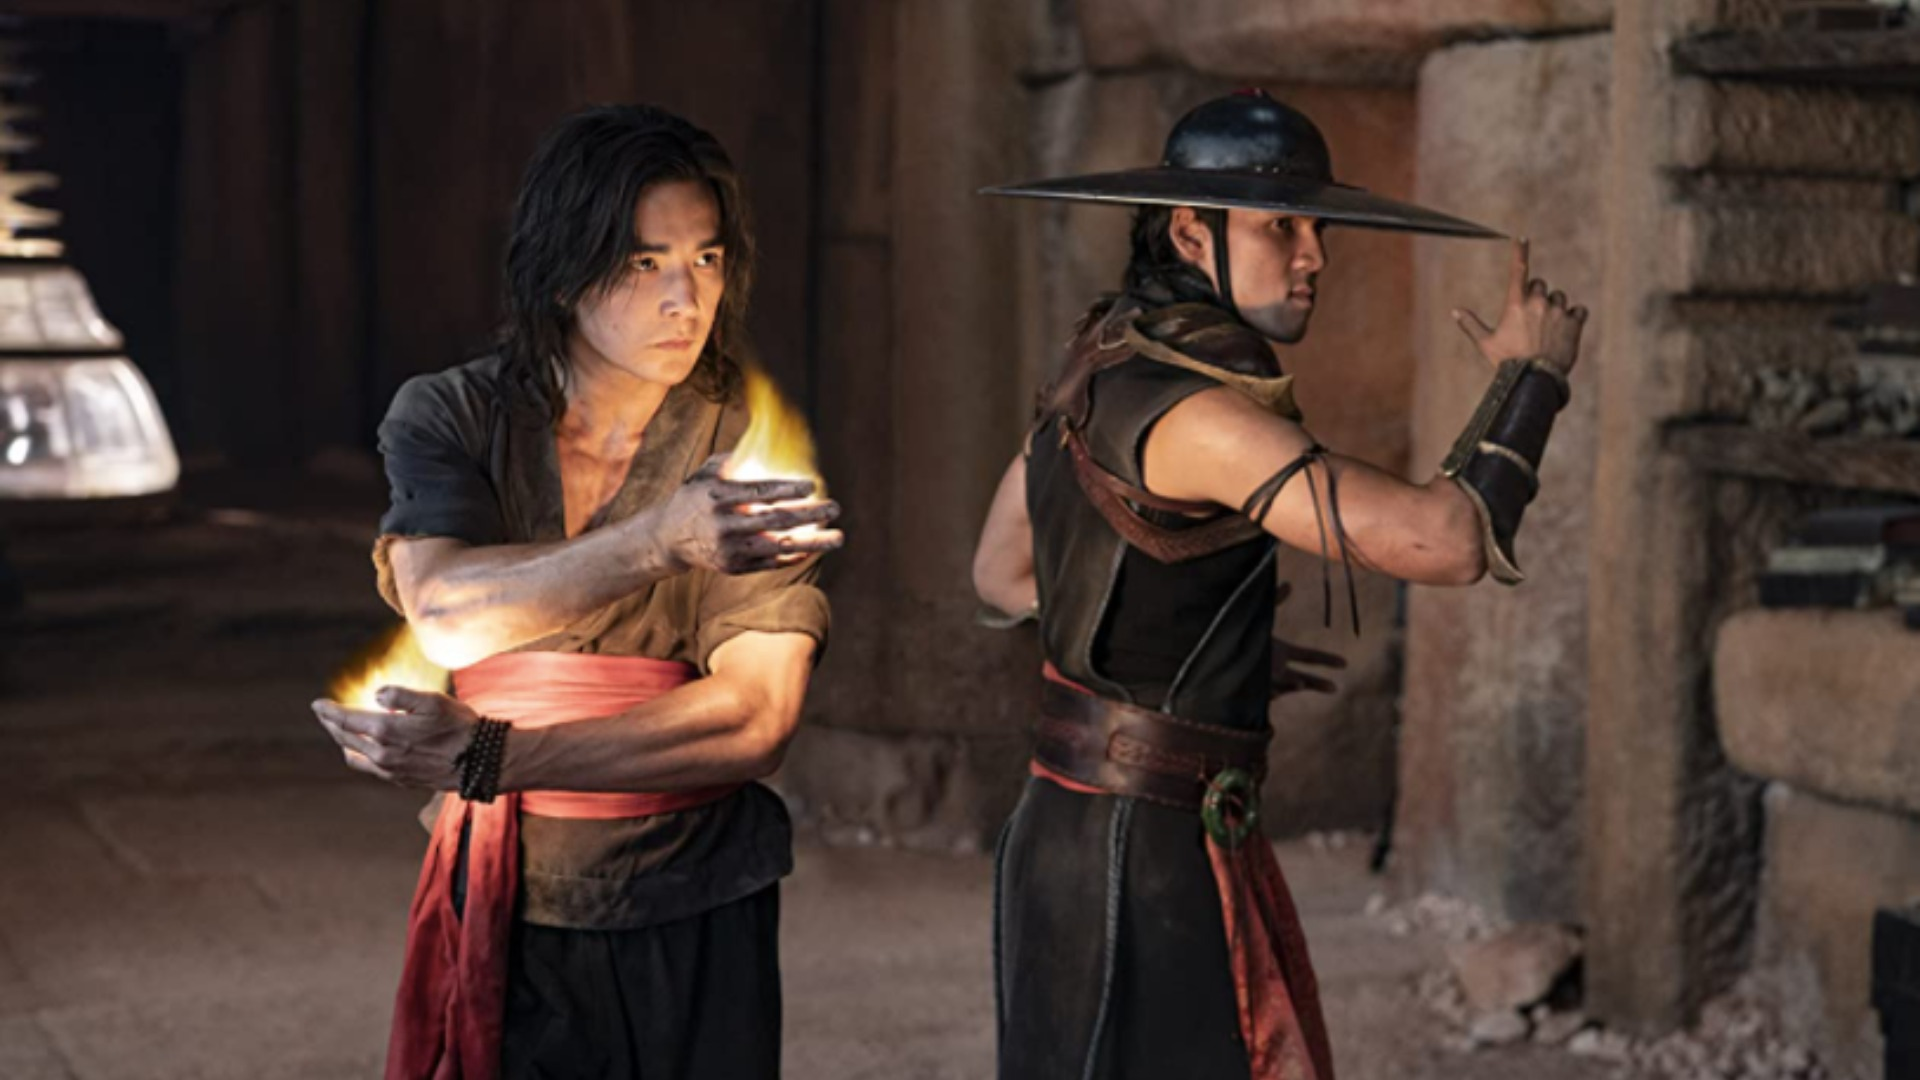 Mortal Kombat featurette highlights deep martial arts roots that inspired the videogames